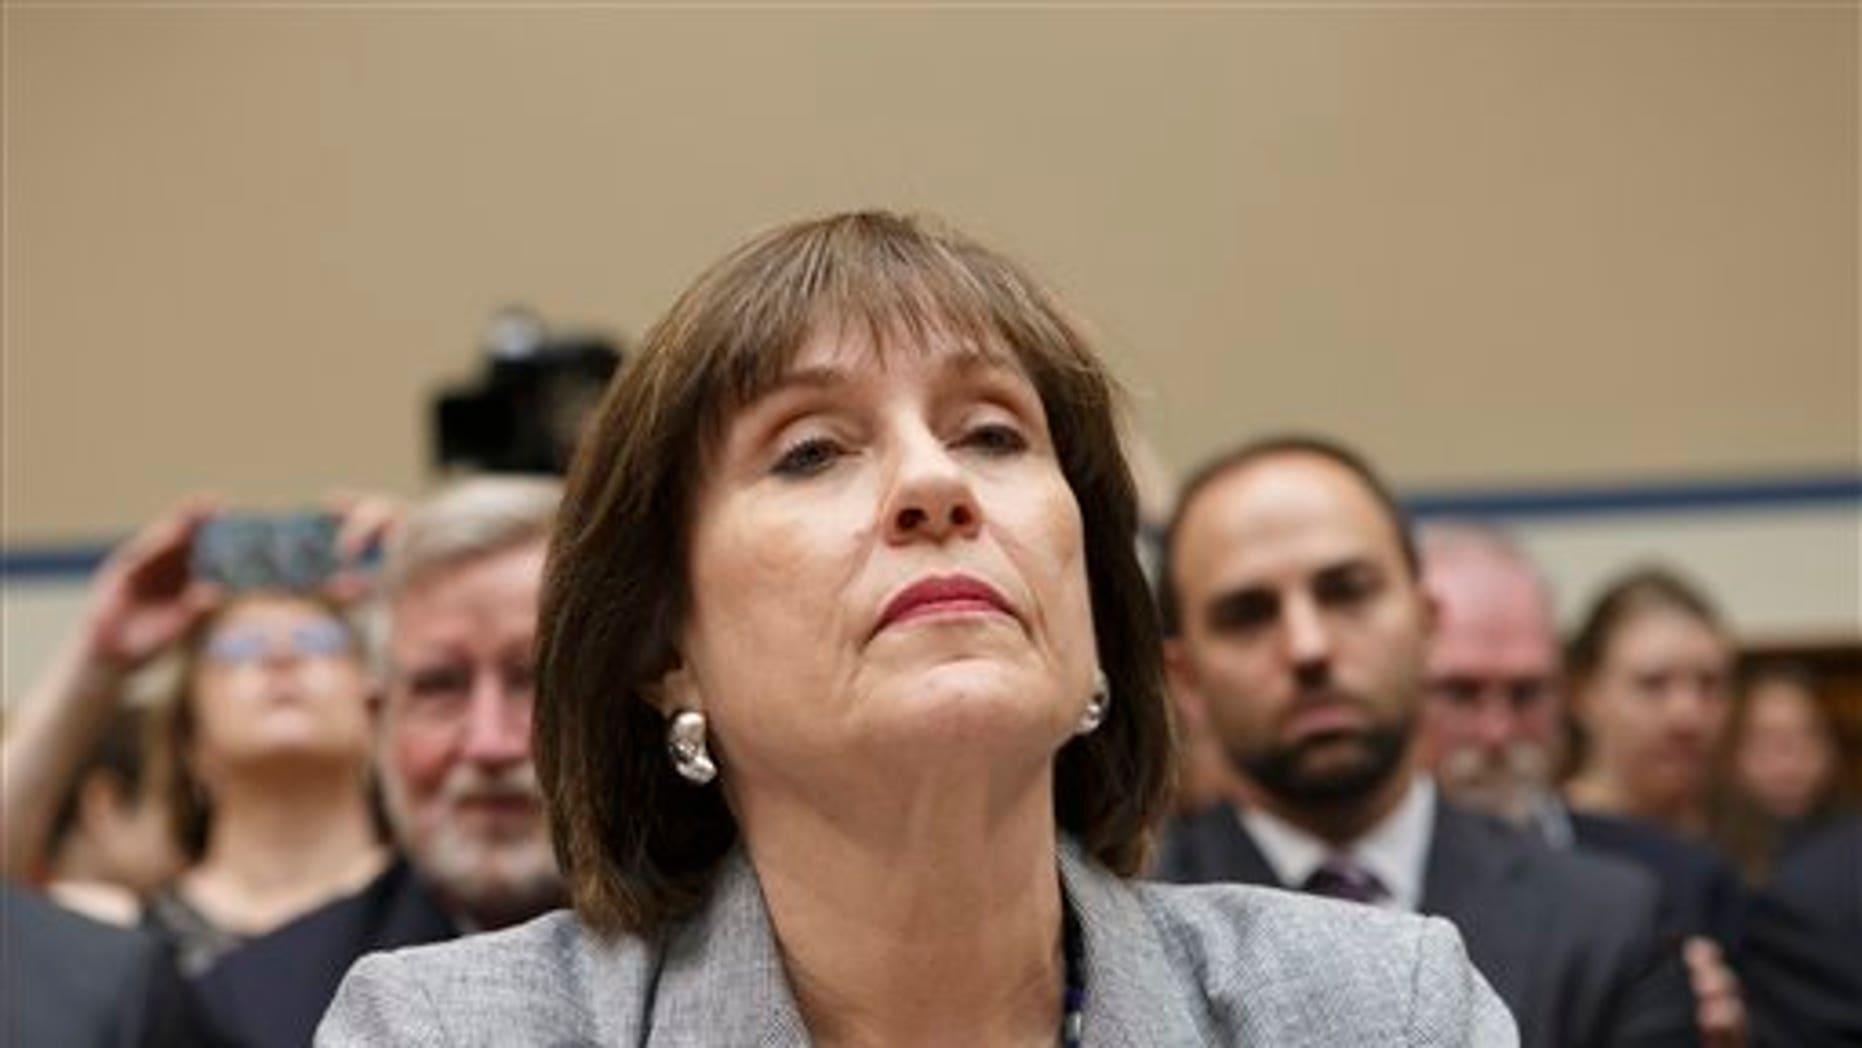 FILE - In this May 22, 2013 file photo, Internal Revenue Service official Lois Lerner listens during a House Oversight Committee hearing on Capitol Hill in Washington.(AP Photo/J. Scott Applewhite, File)